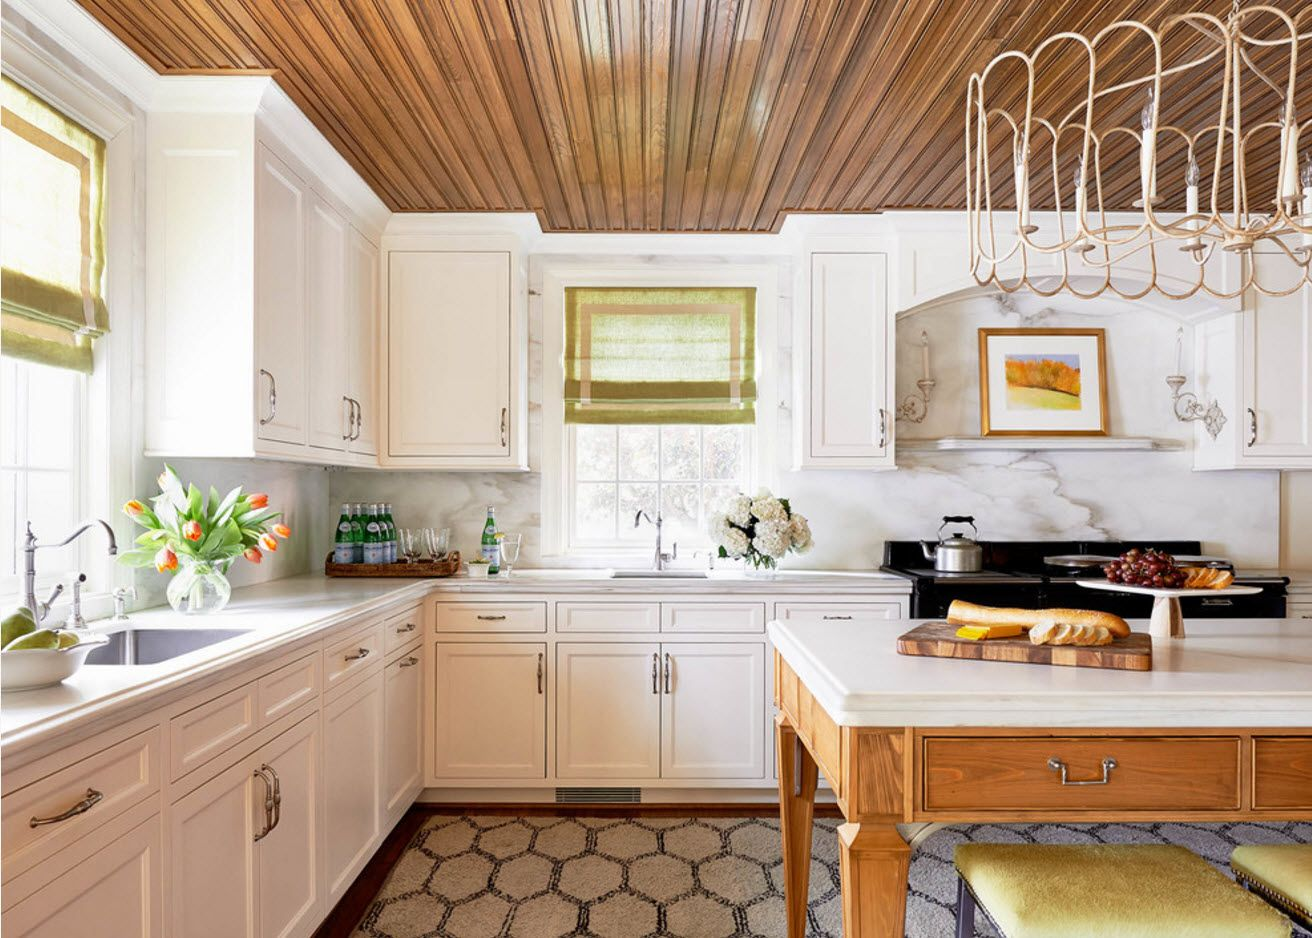 Planked wooden ceiling in light Provence styled kitchen